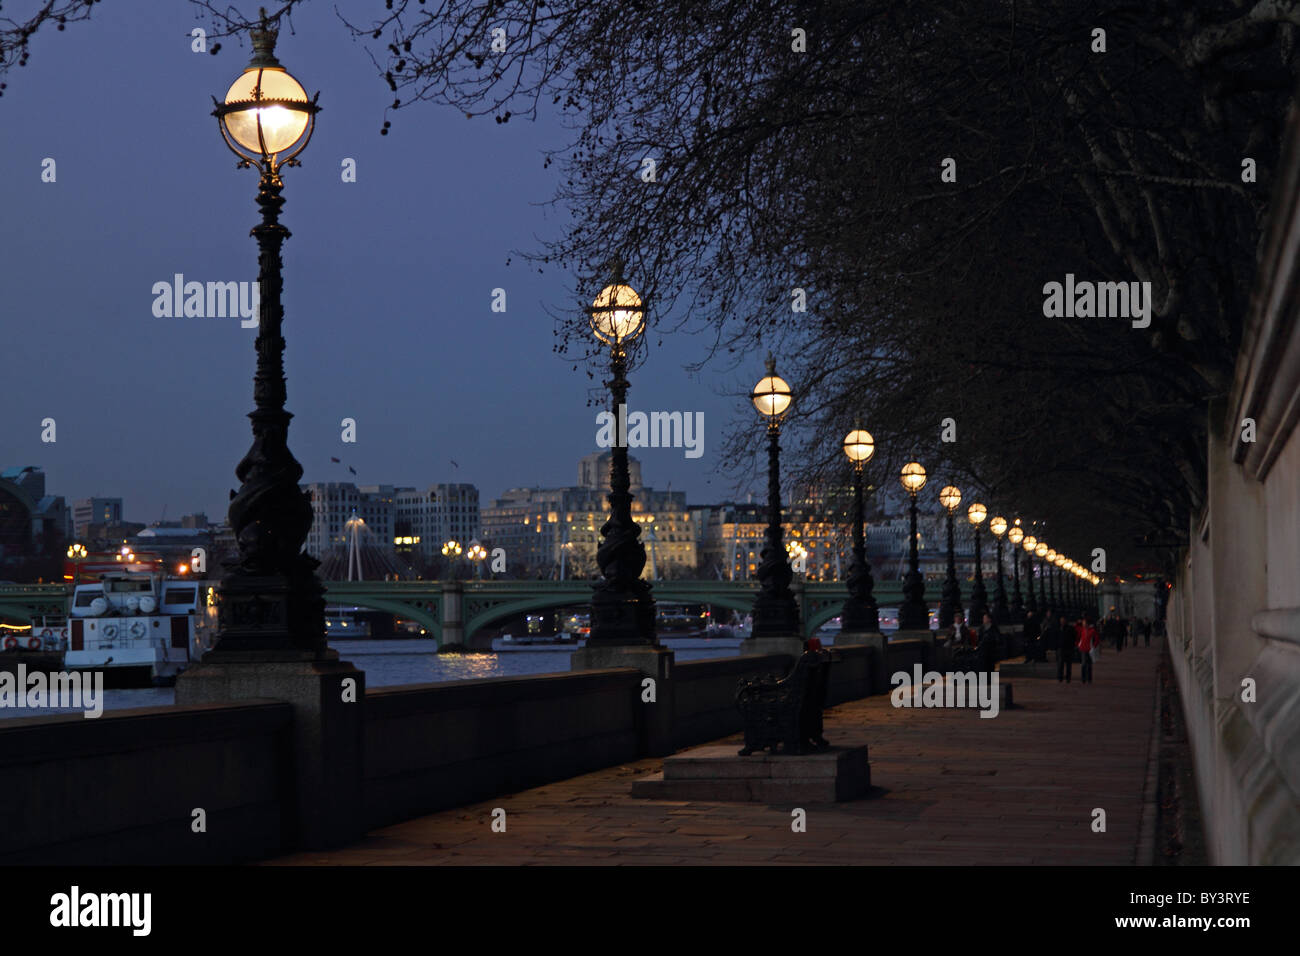 South Bank by lamp light Thames embankment London path evening walk - Stock Image